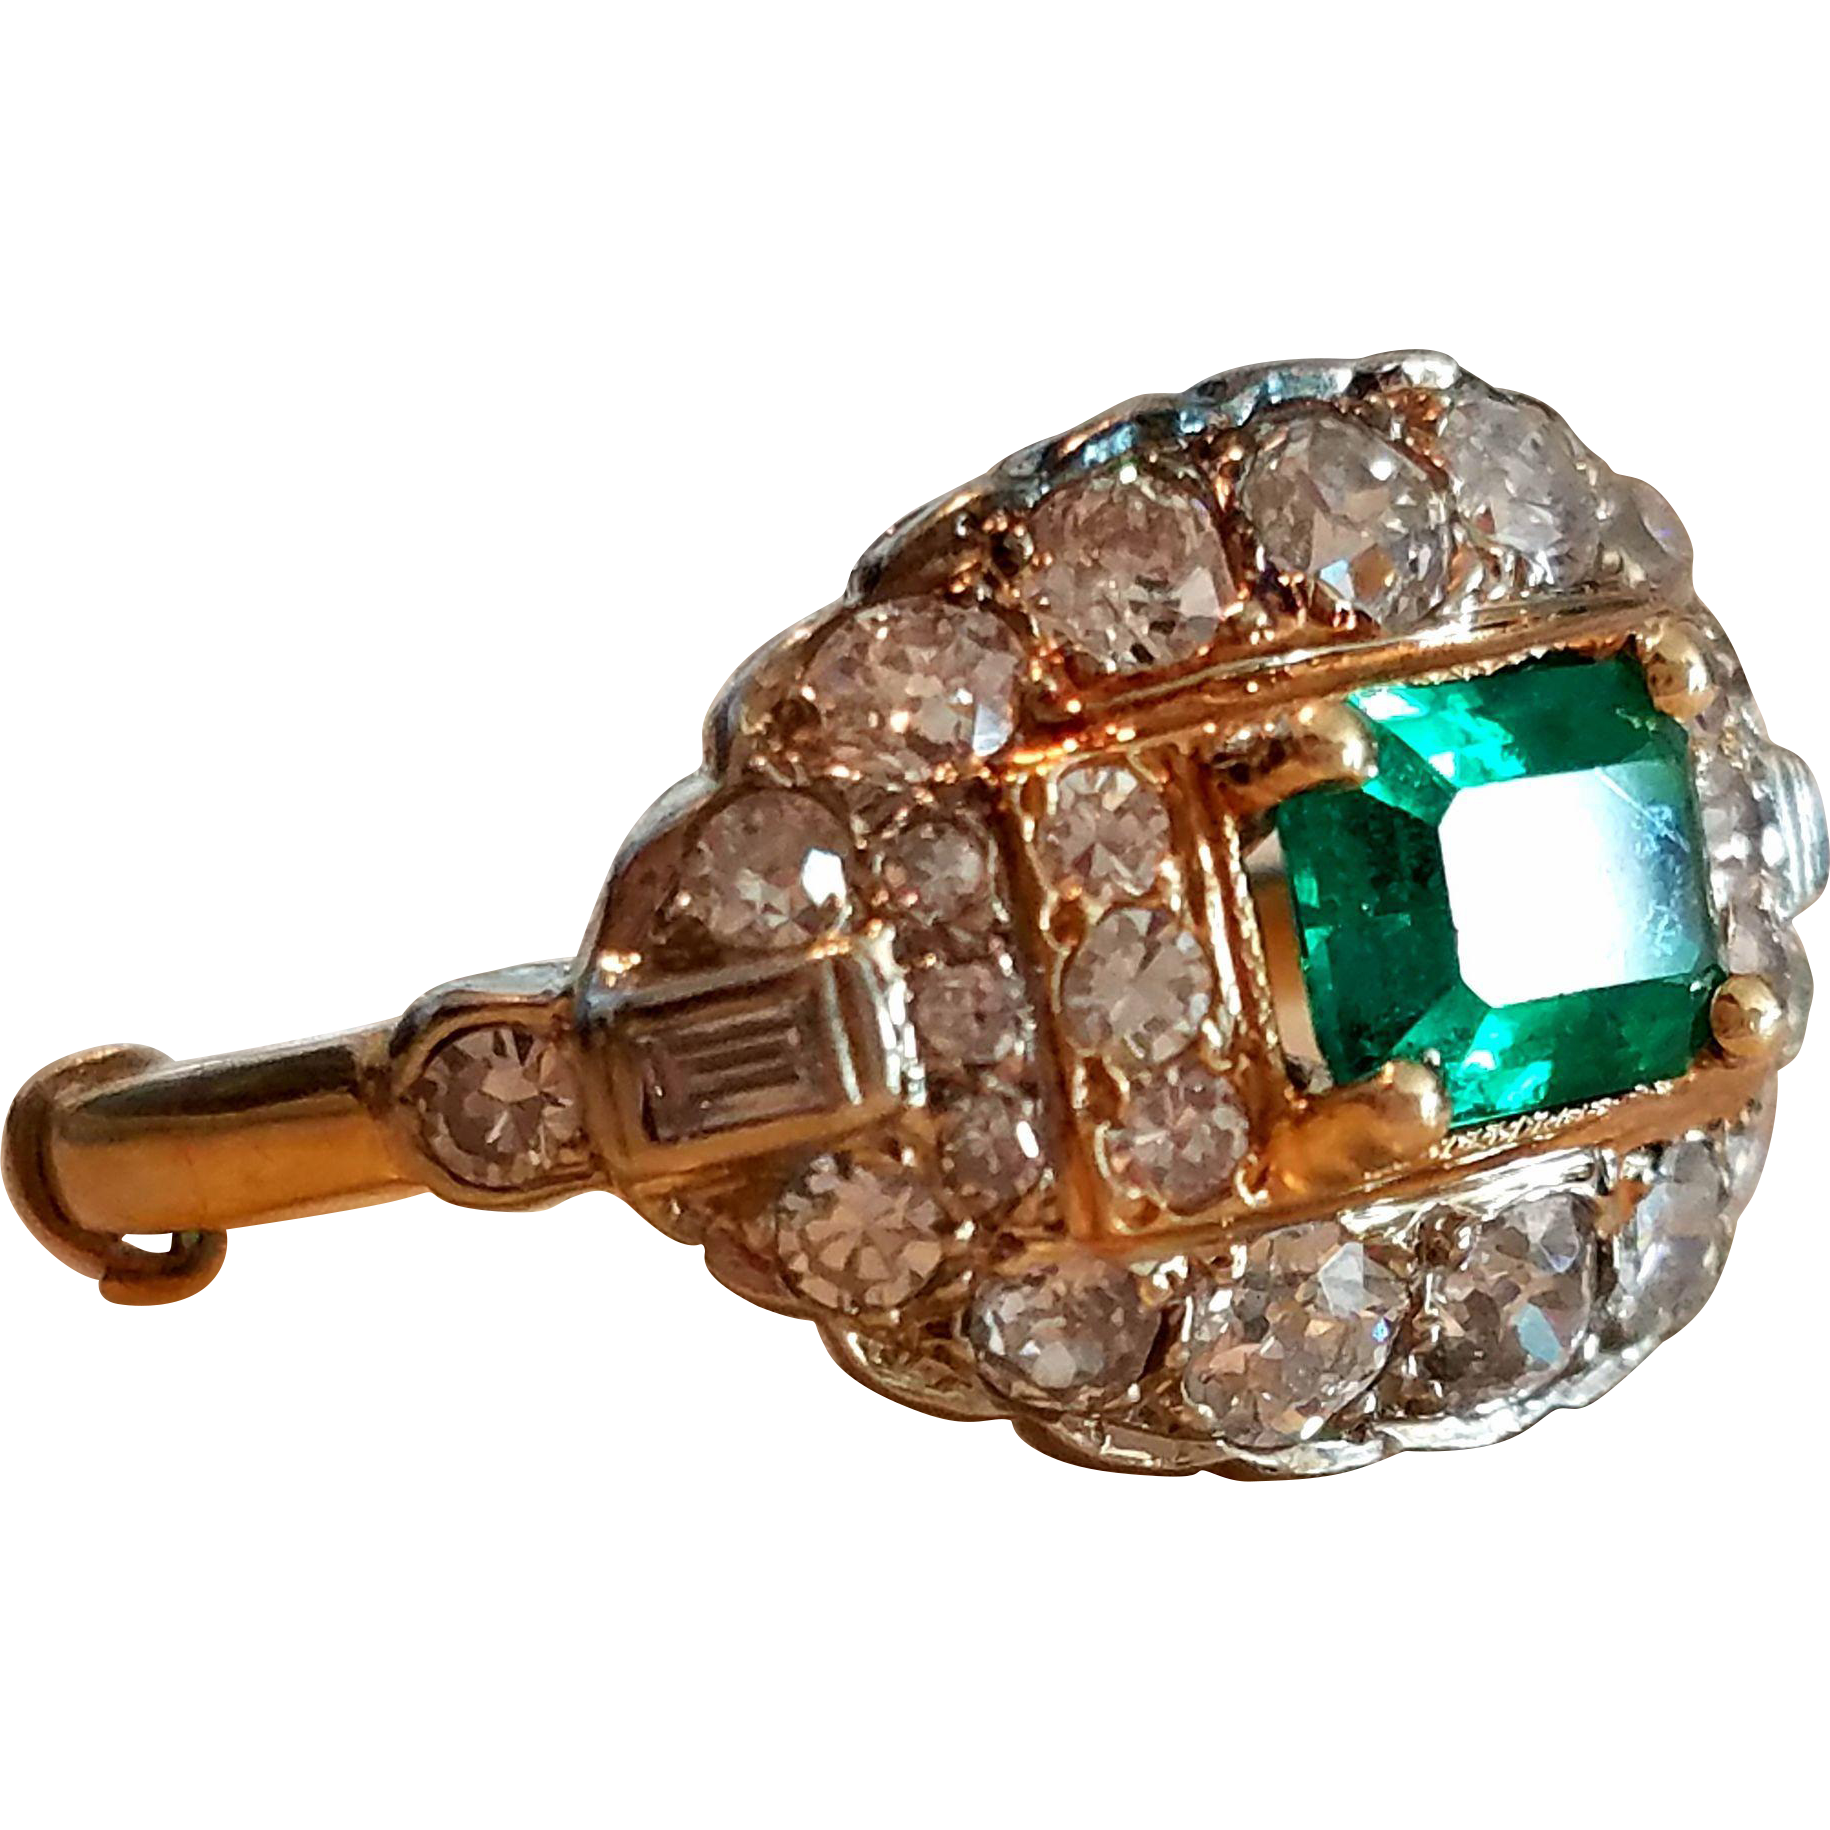 2.43tcw Antique Edwardian Emerald Ring with Old Mine Cut Diamonds